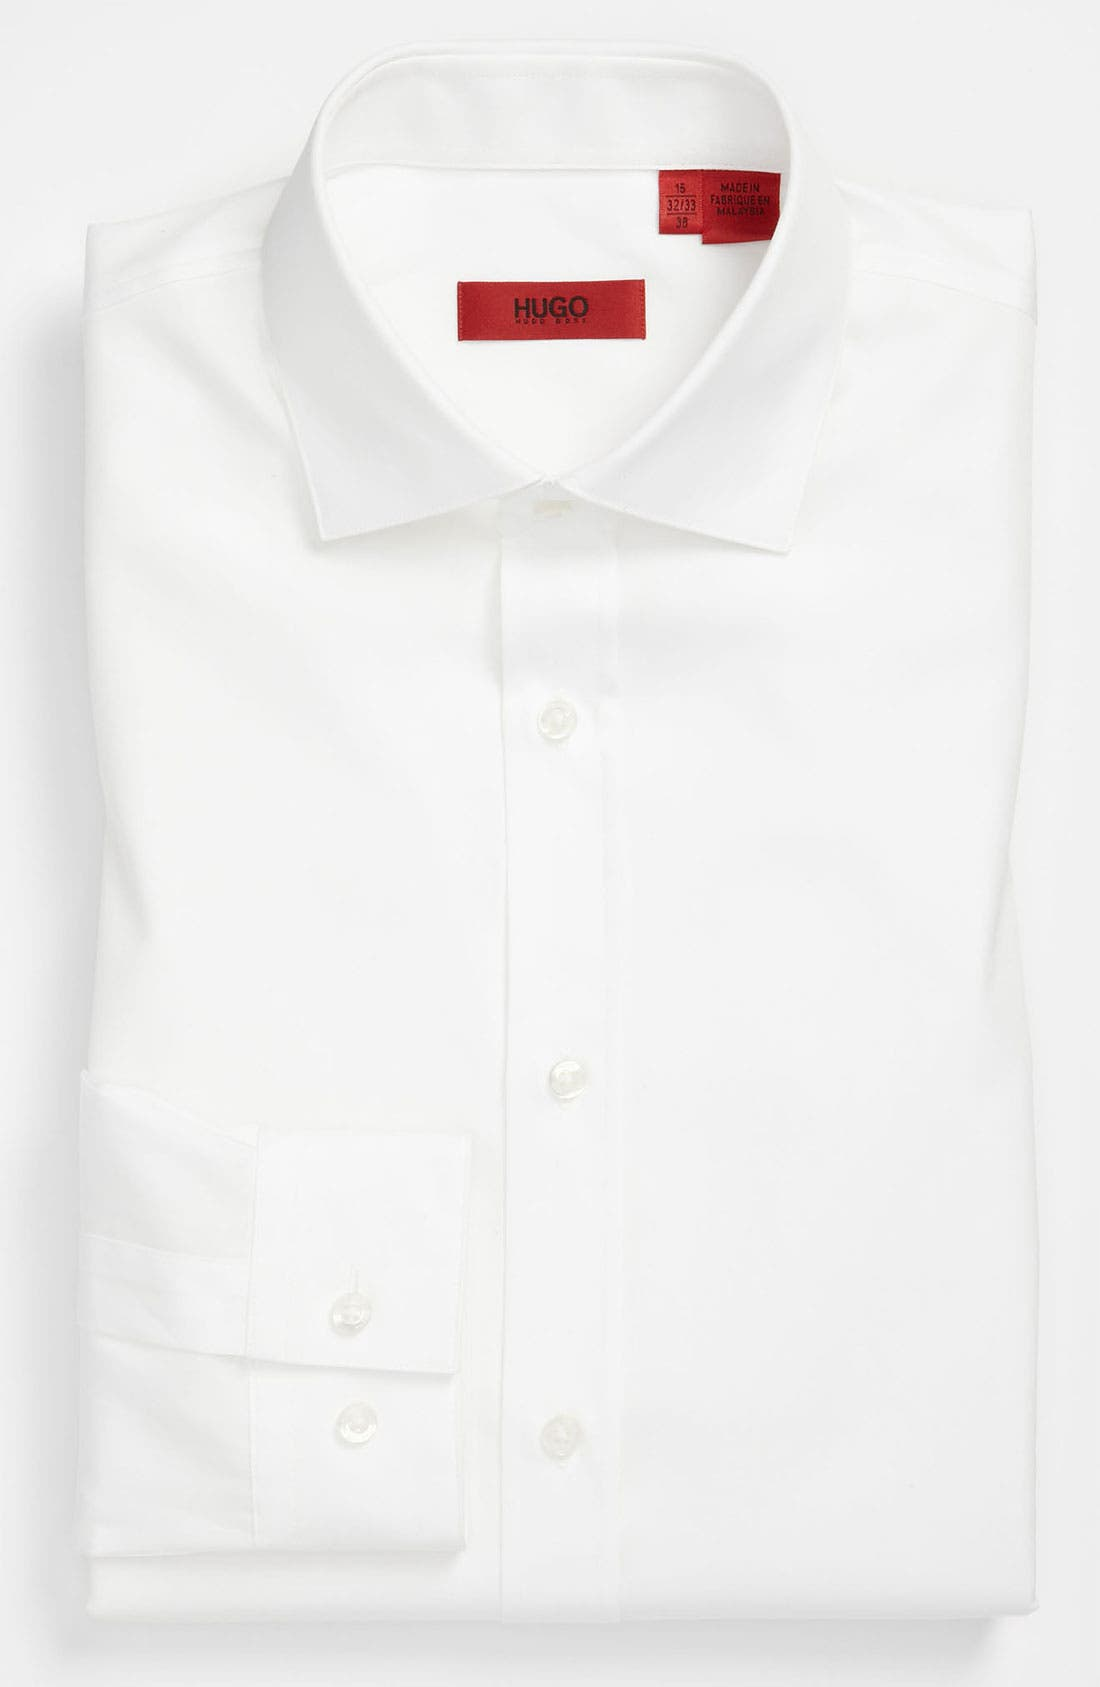 Main Image - HUGO Slim Fit Dress Shirt